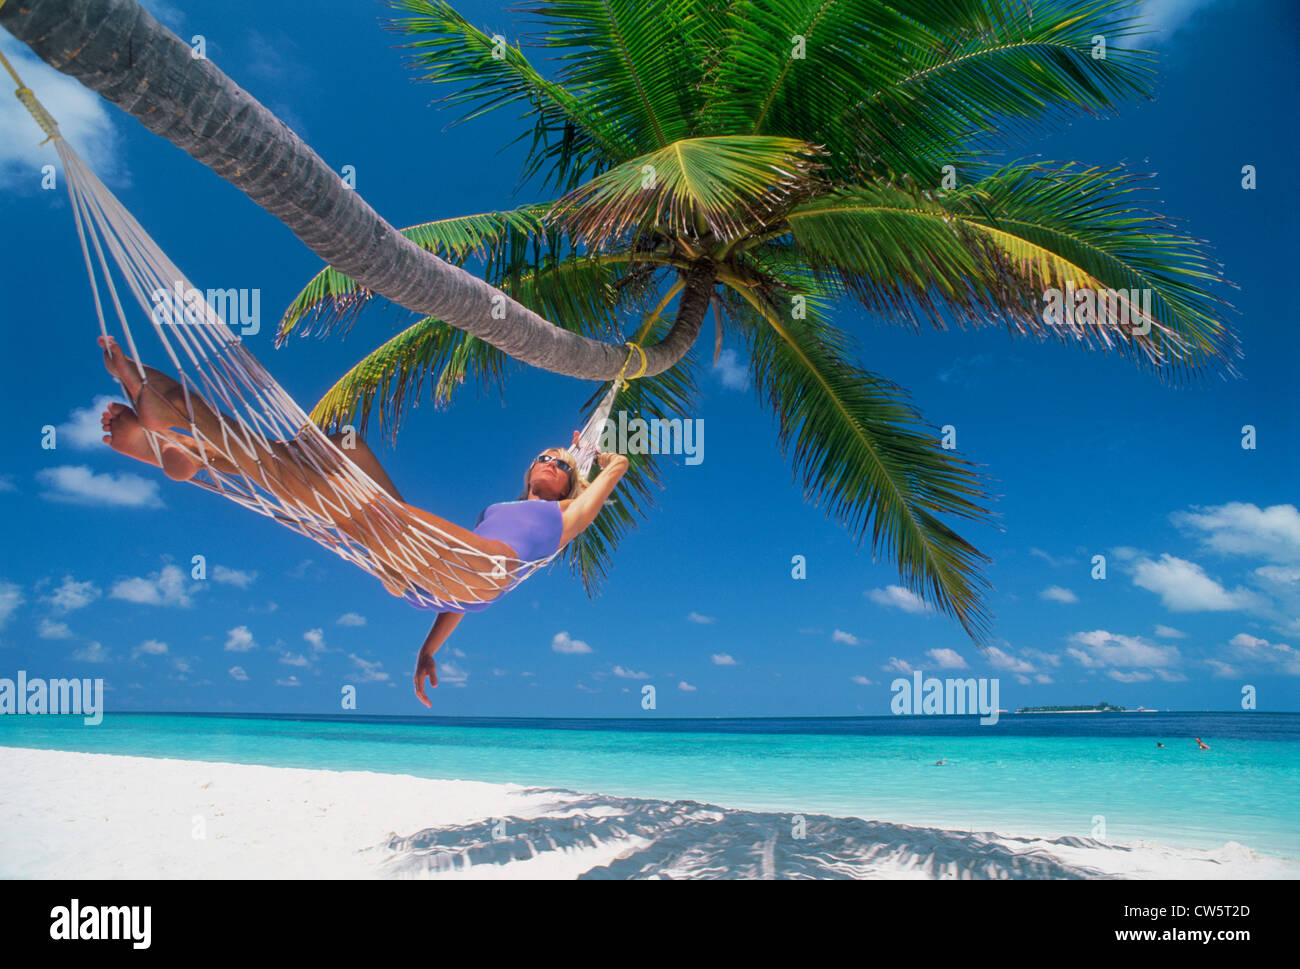 Woman in hammock under palm tree in idyllic holiday setting Stock Foto